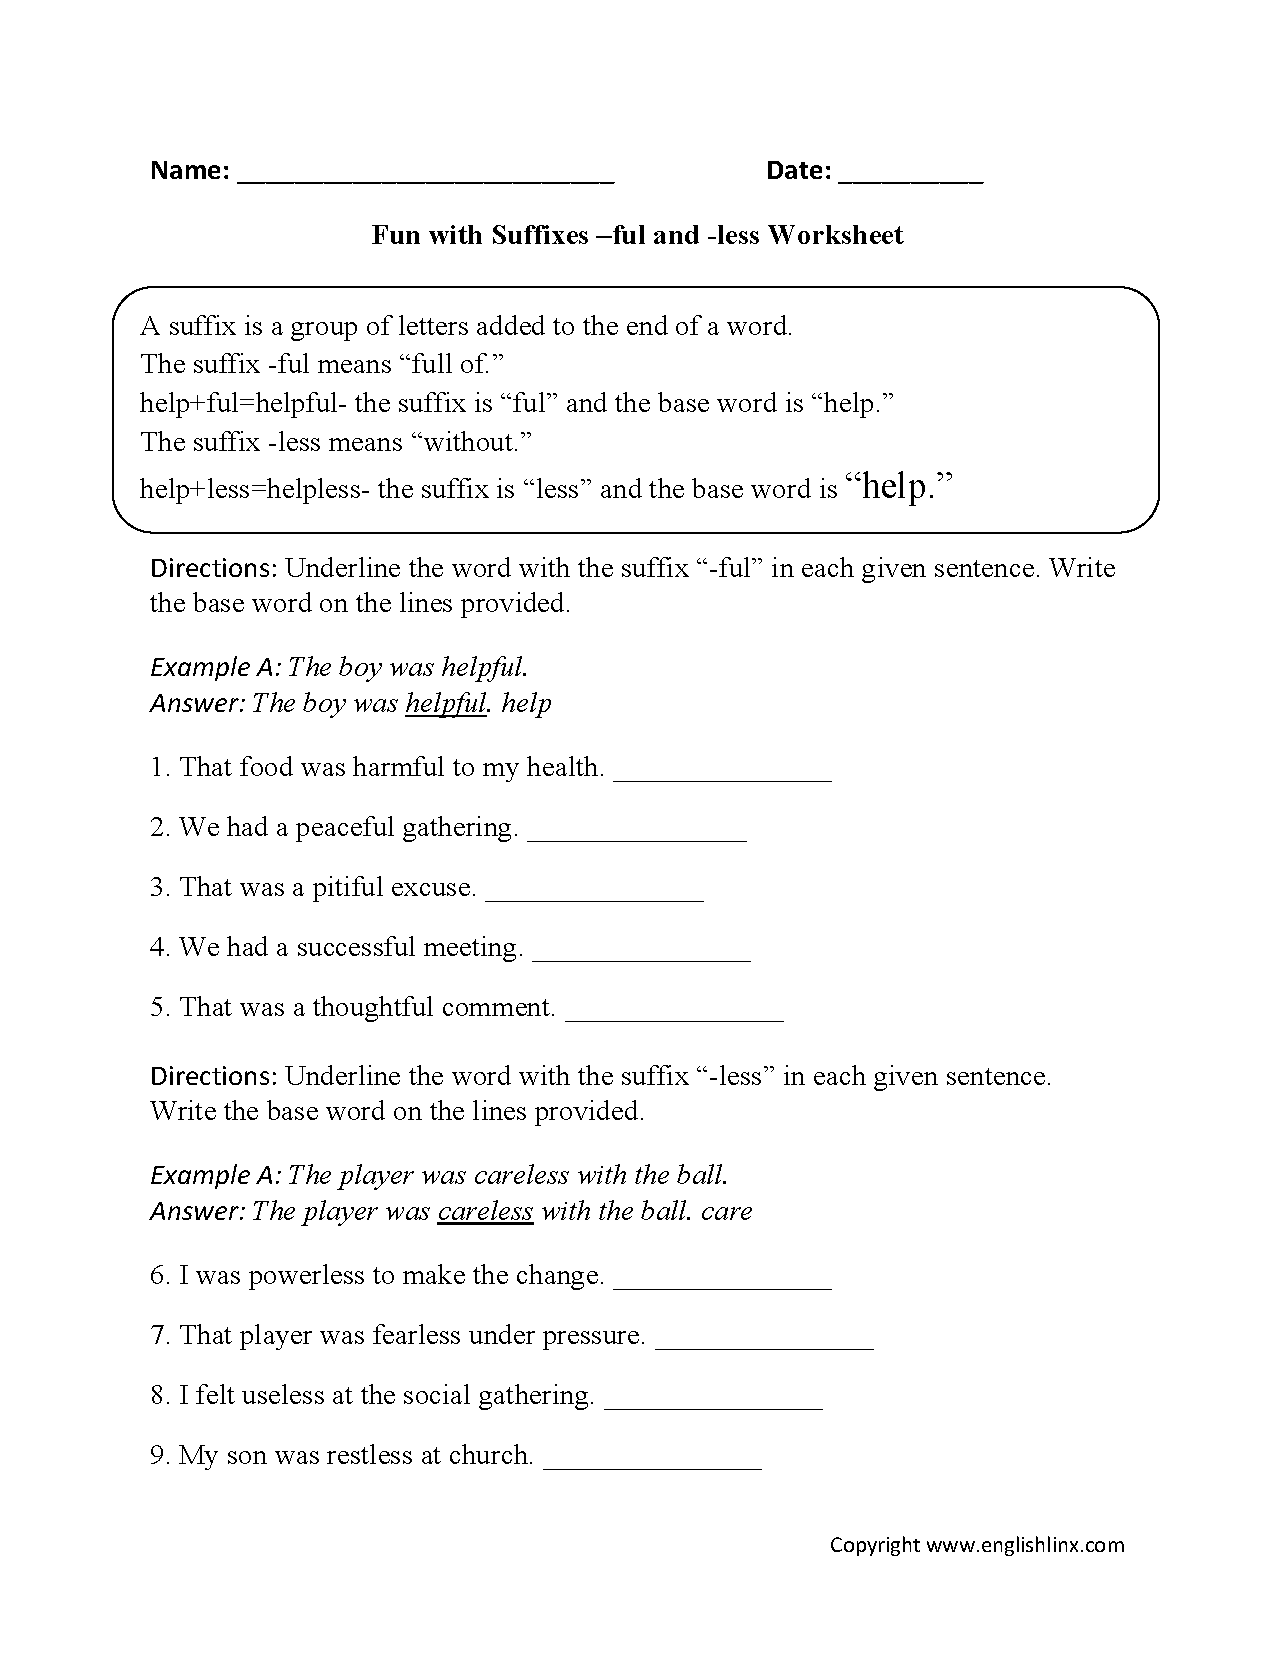 Unit Two Vocabulary Worksheet Student Name: Date: ______